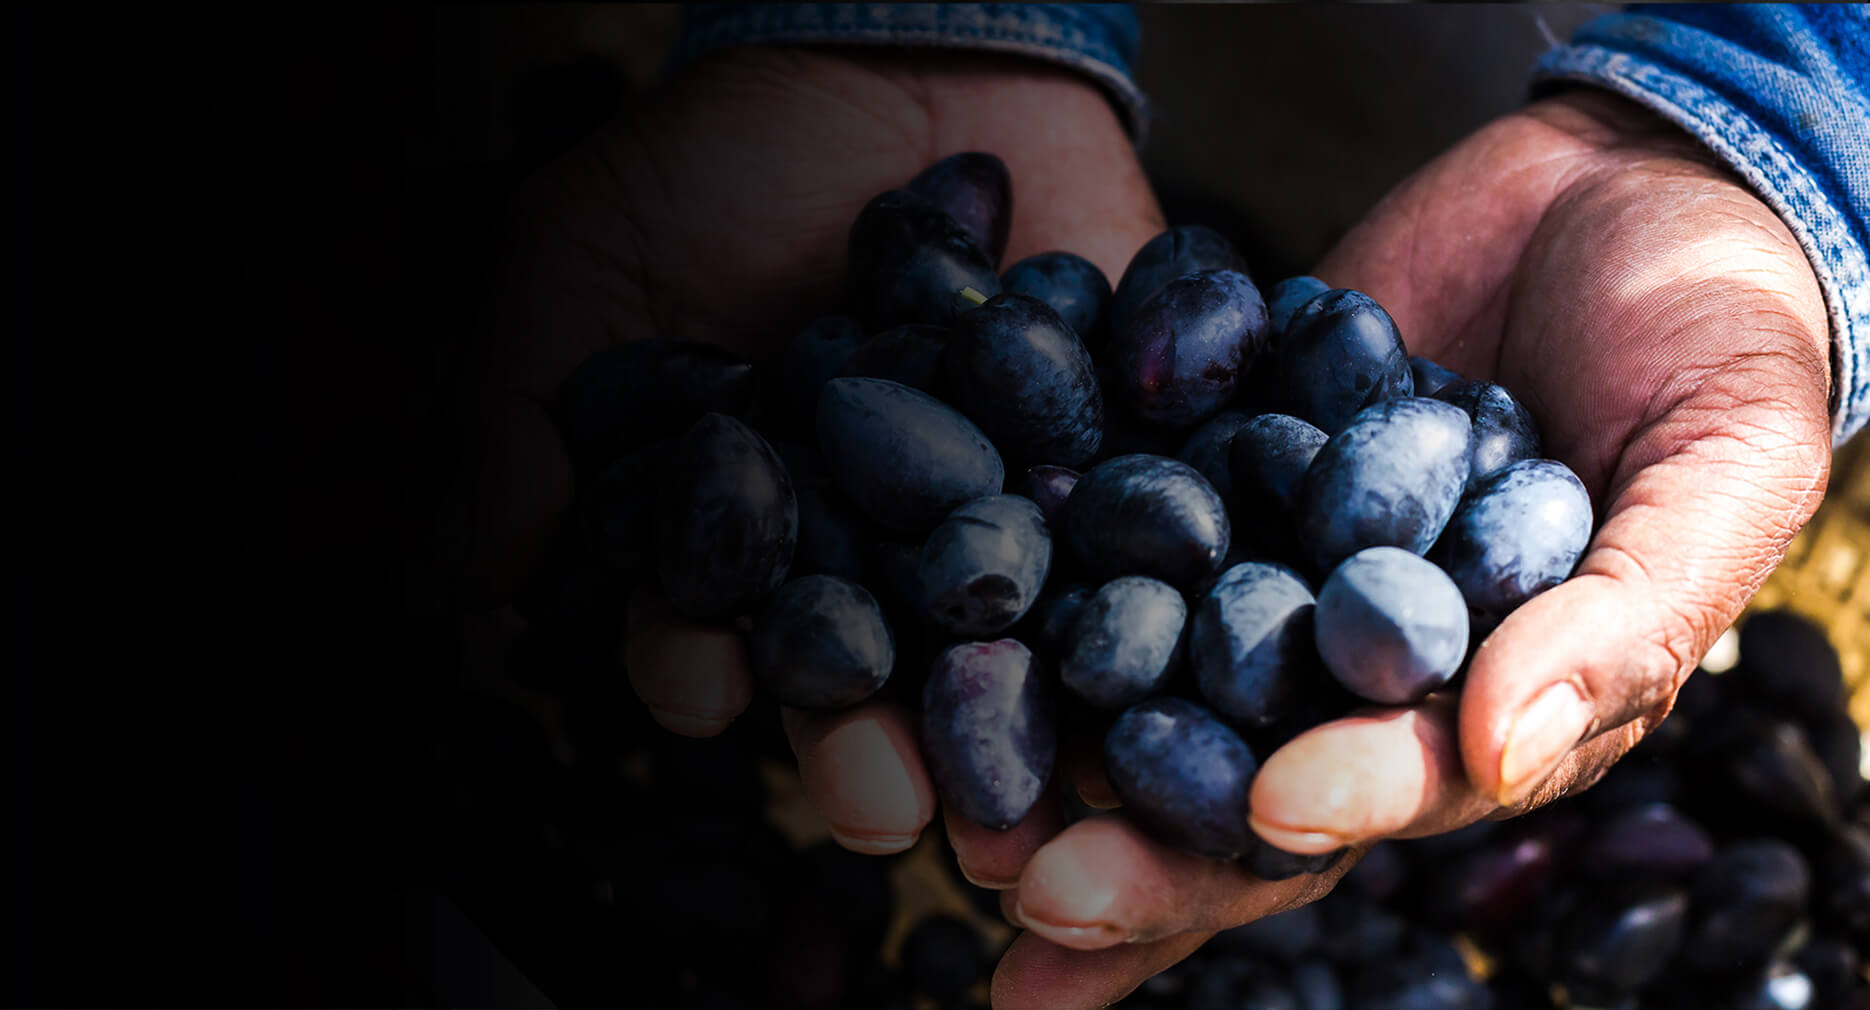 Penfield Olives olive producers slider pic, colour image of a man holding olives in both hands.